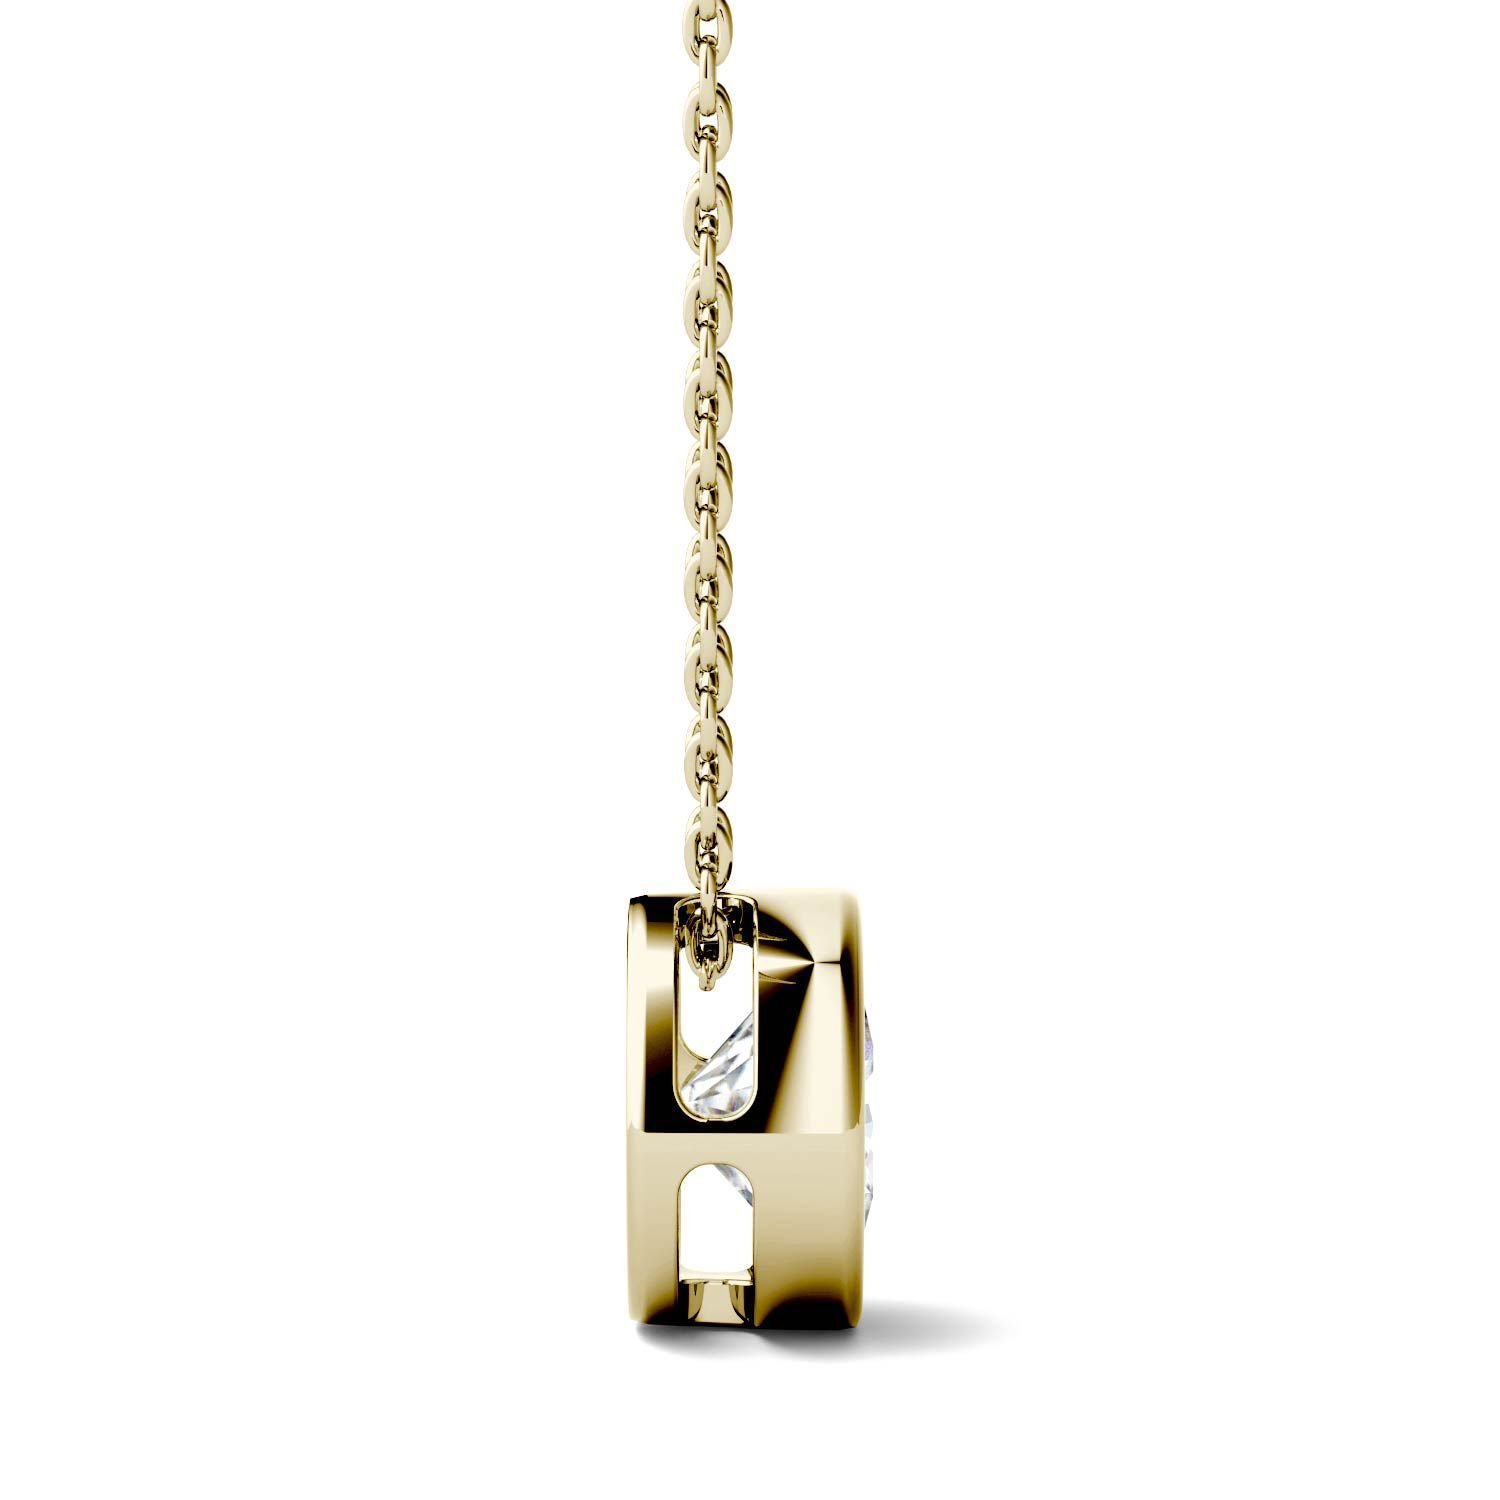 Forever One 14K Yellow Gold Round 8.0mm Moissanite Pendant Necklace, 1.90ct DEW By Charles & Colvard by Charles & Colvard (Image #2)